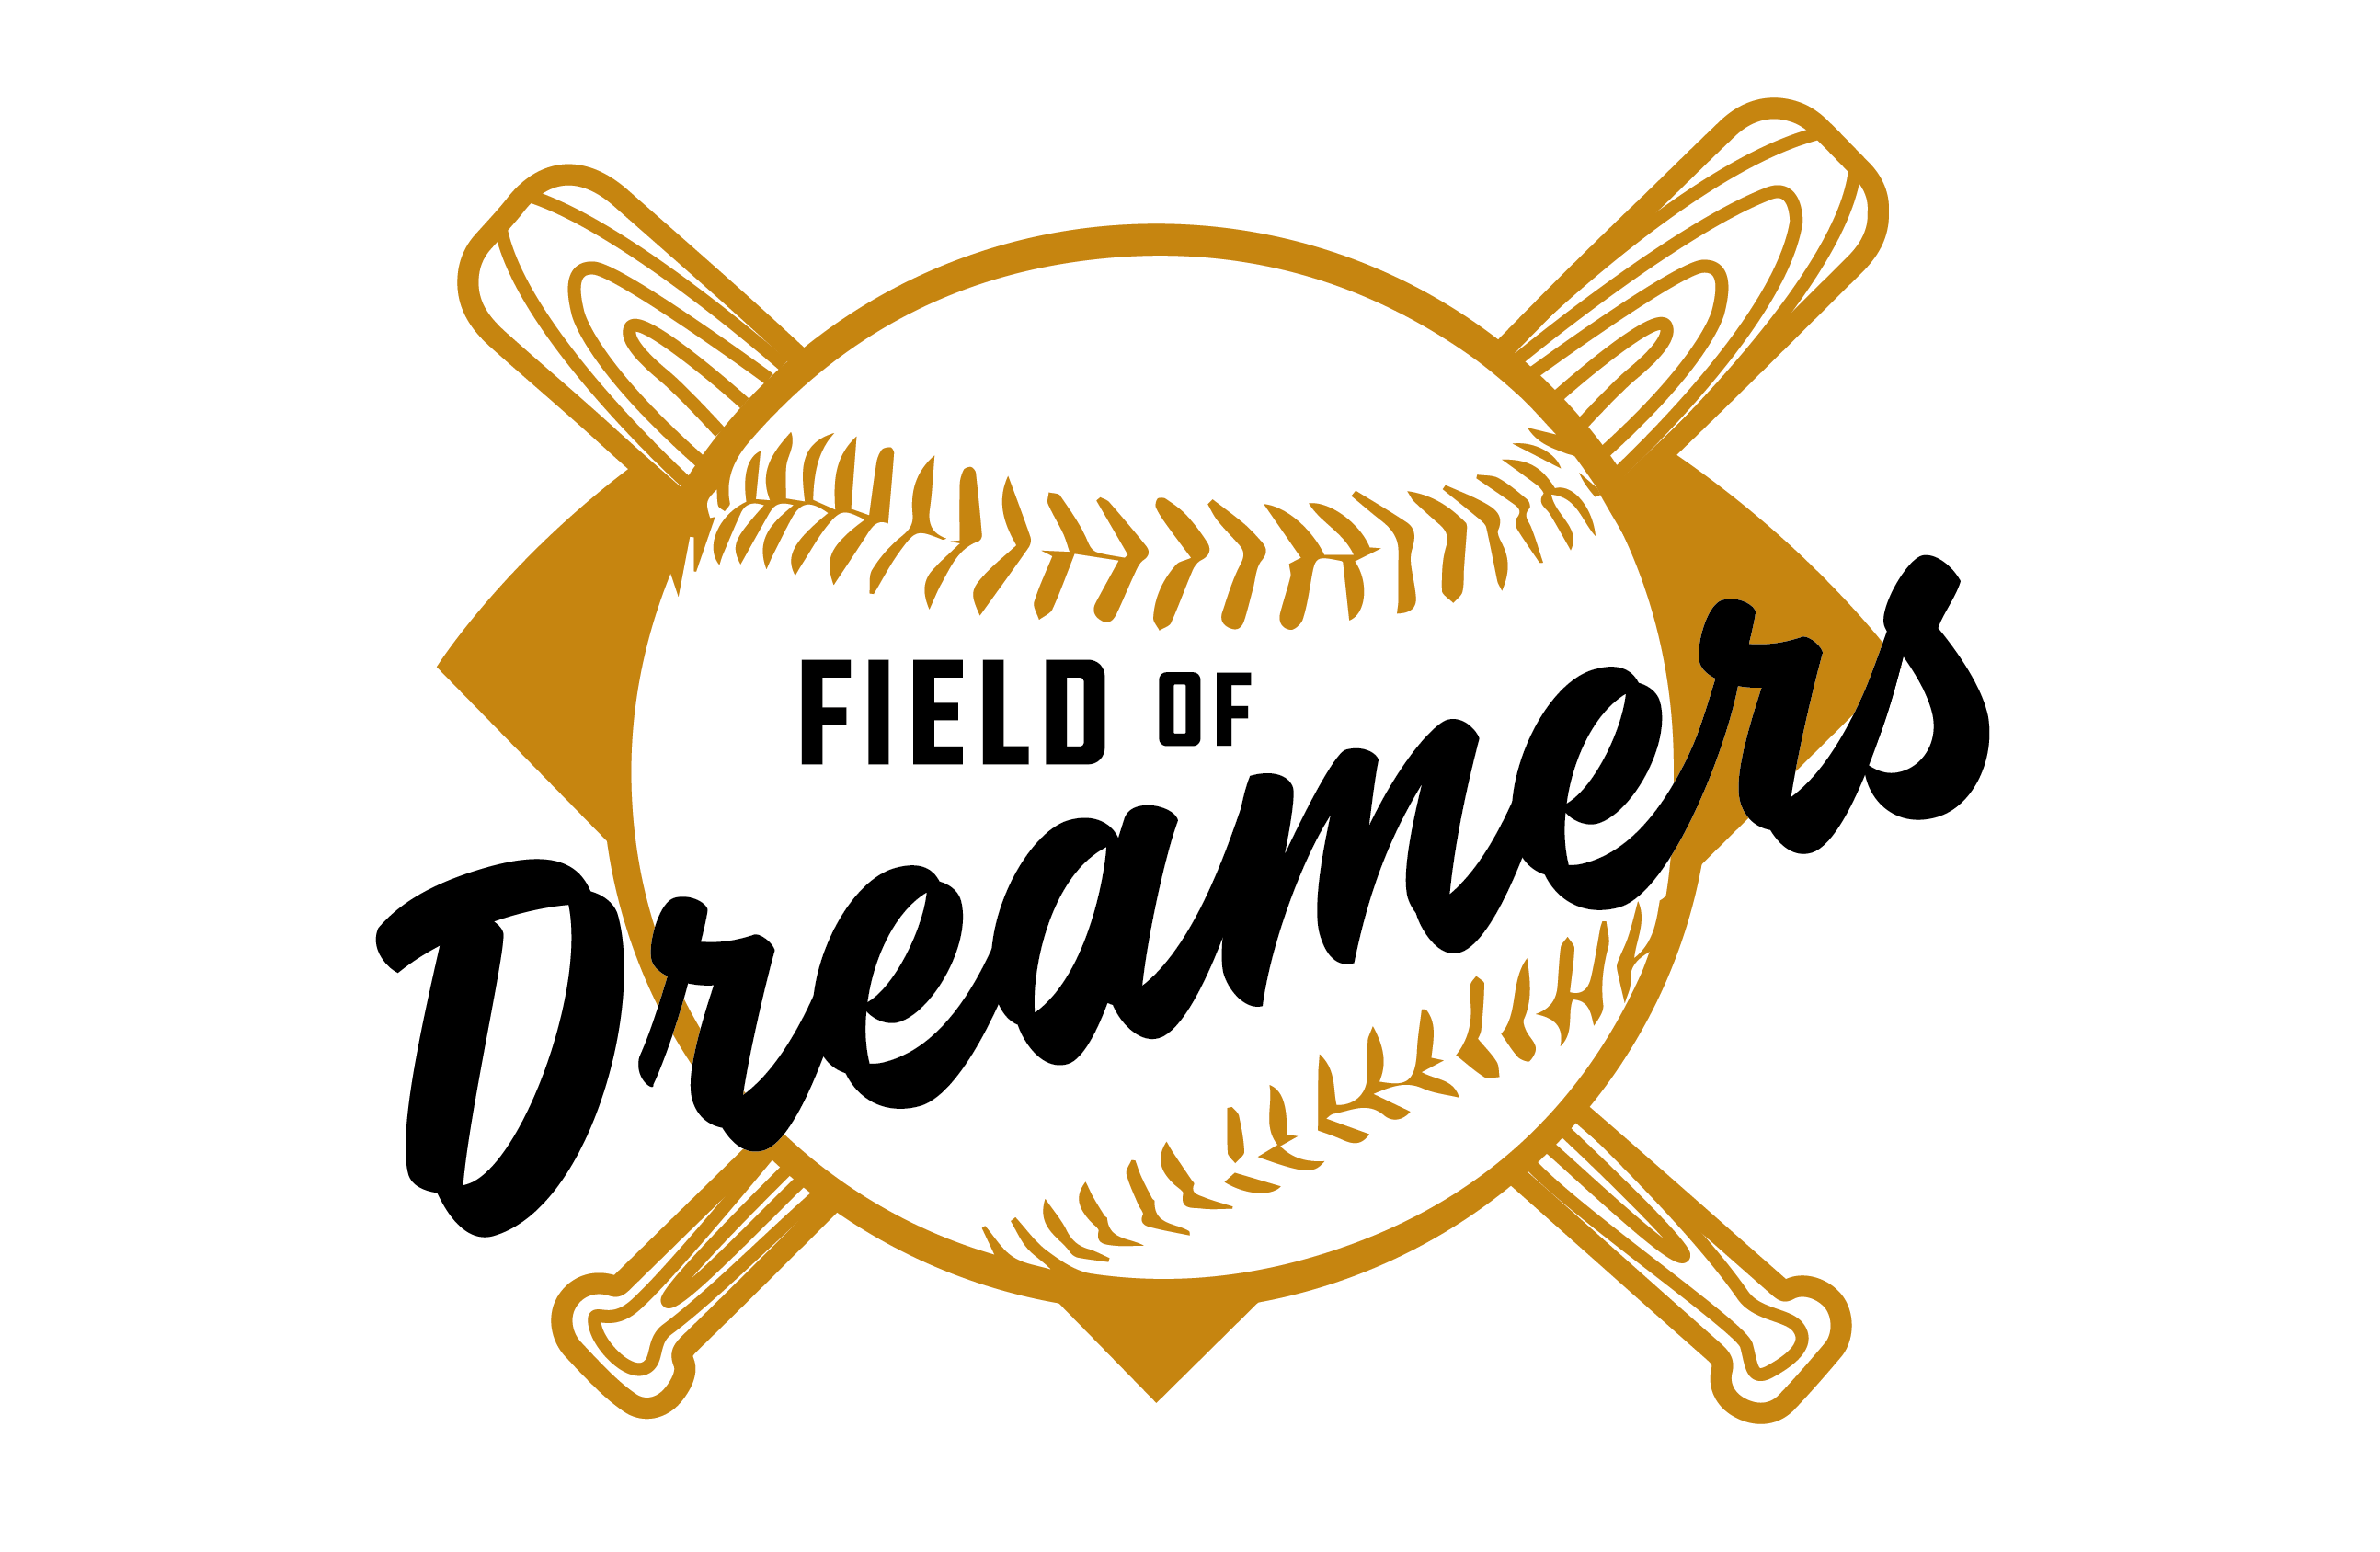 Field of Dreamers